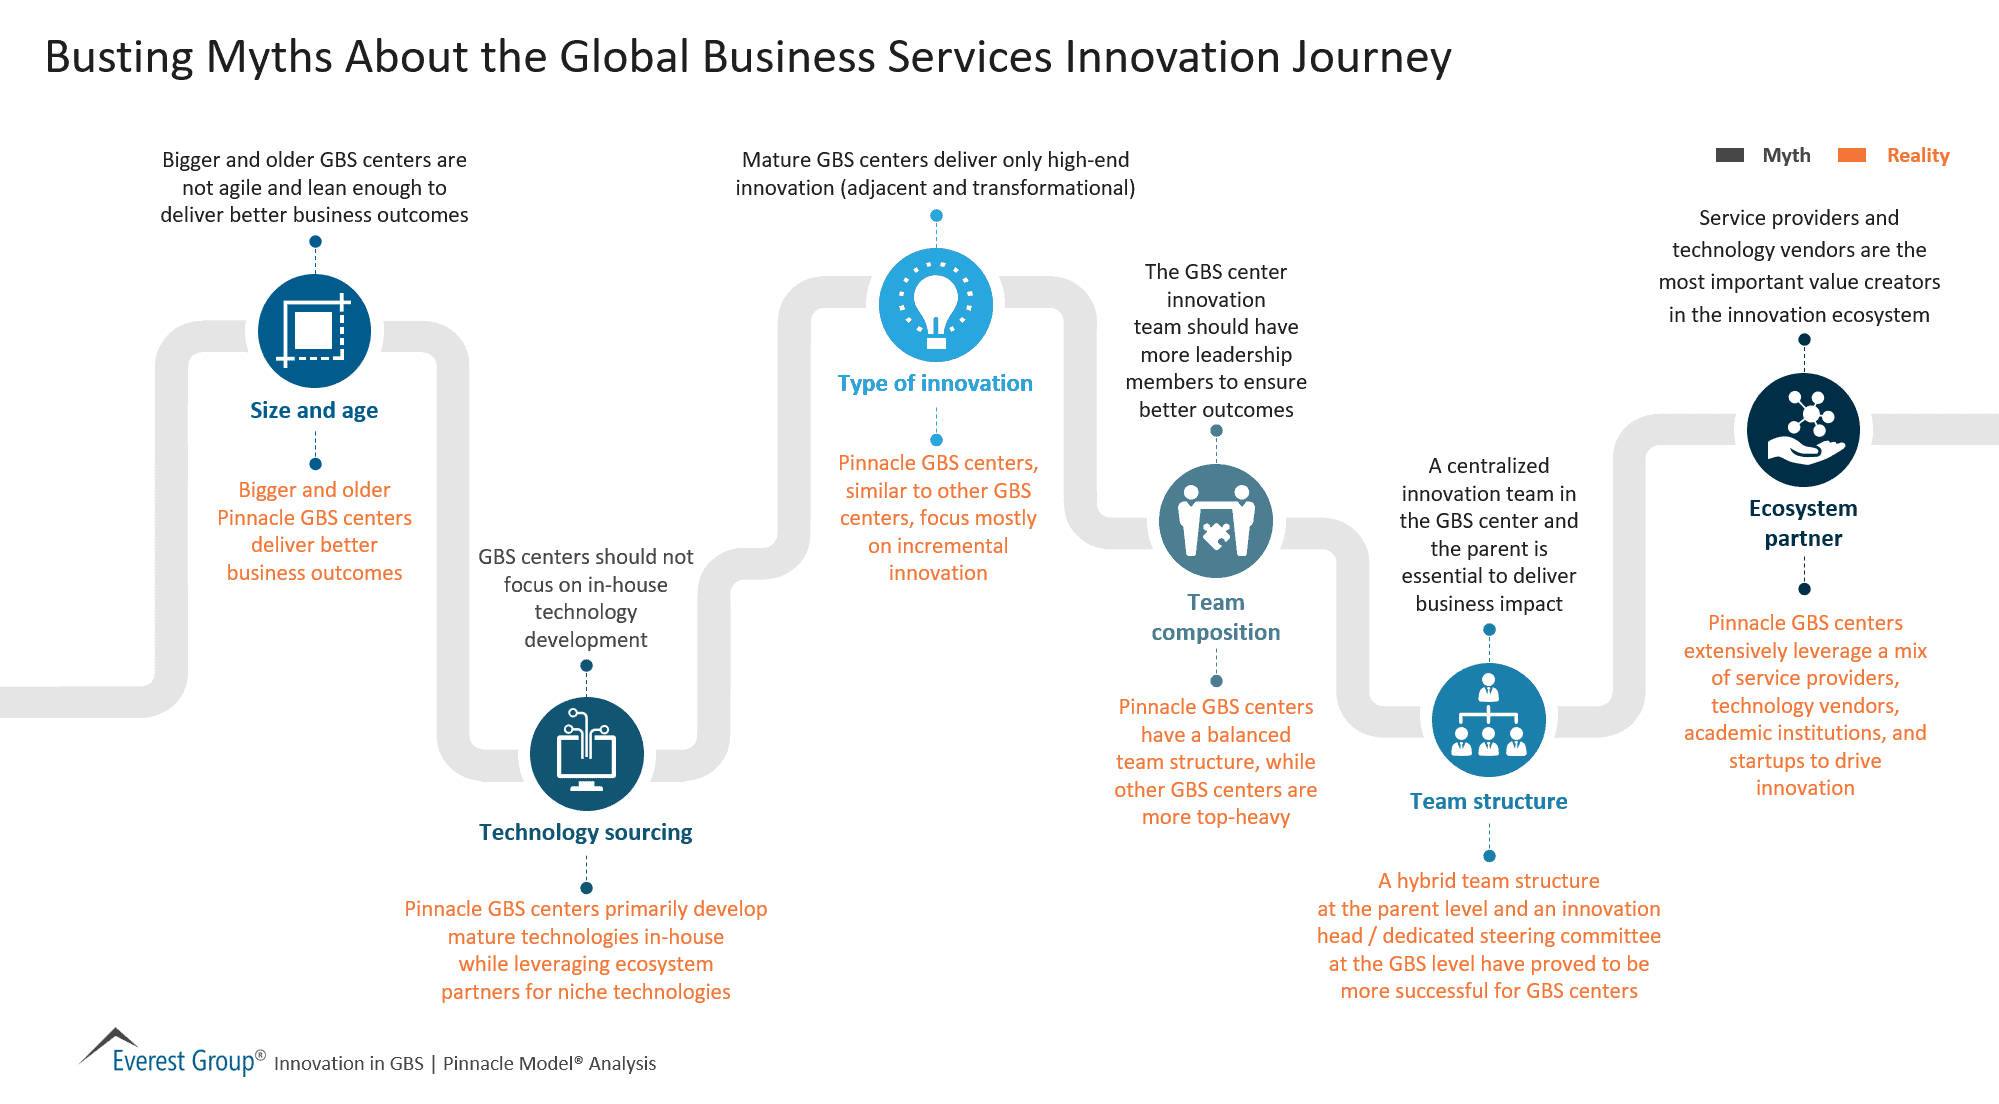 Busting Myths About the Global Business Services Innovation Journey